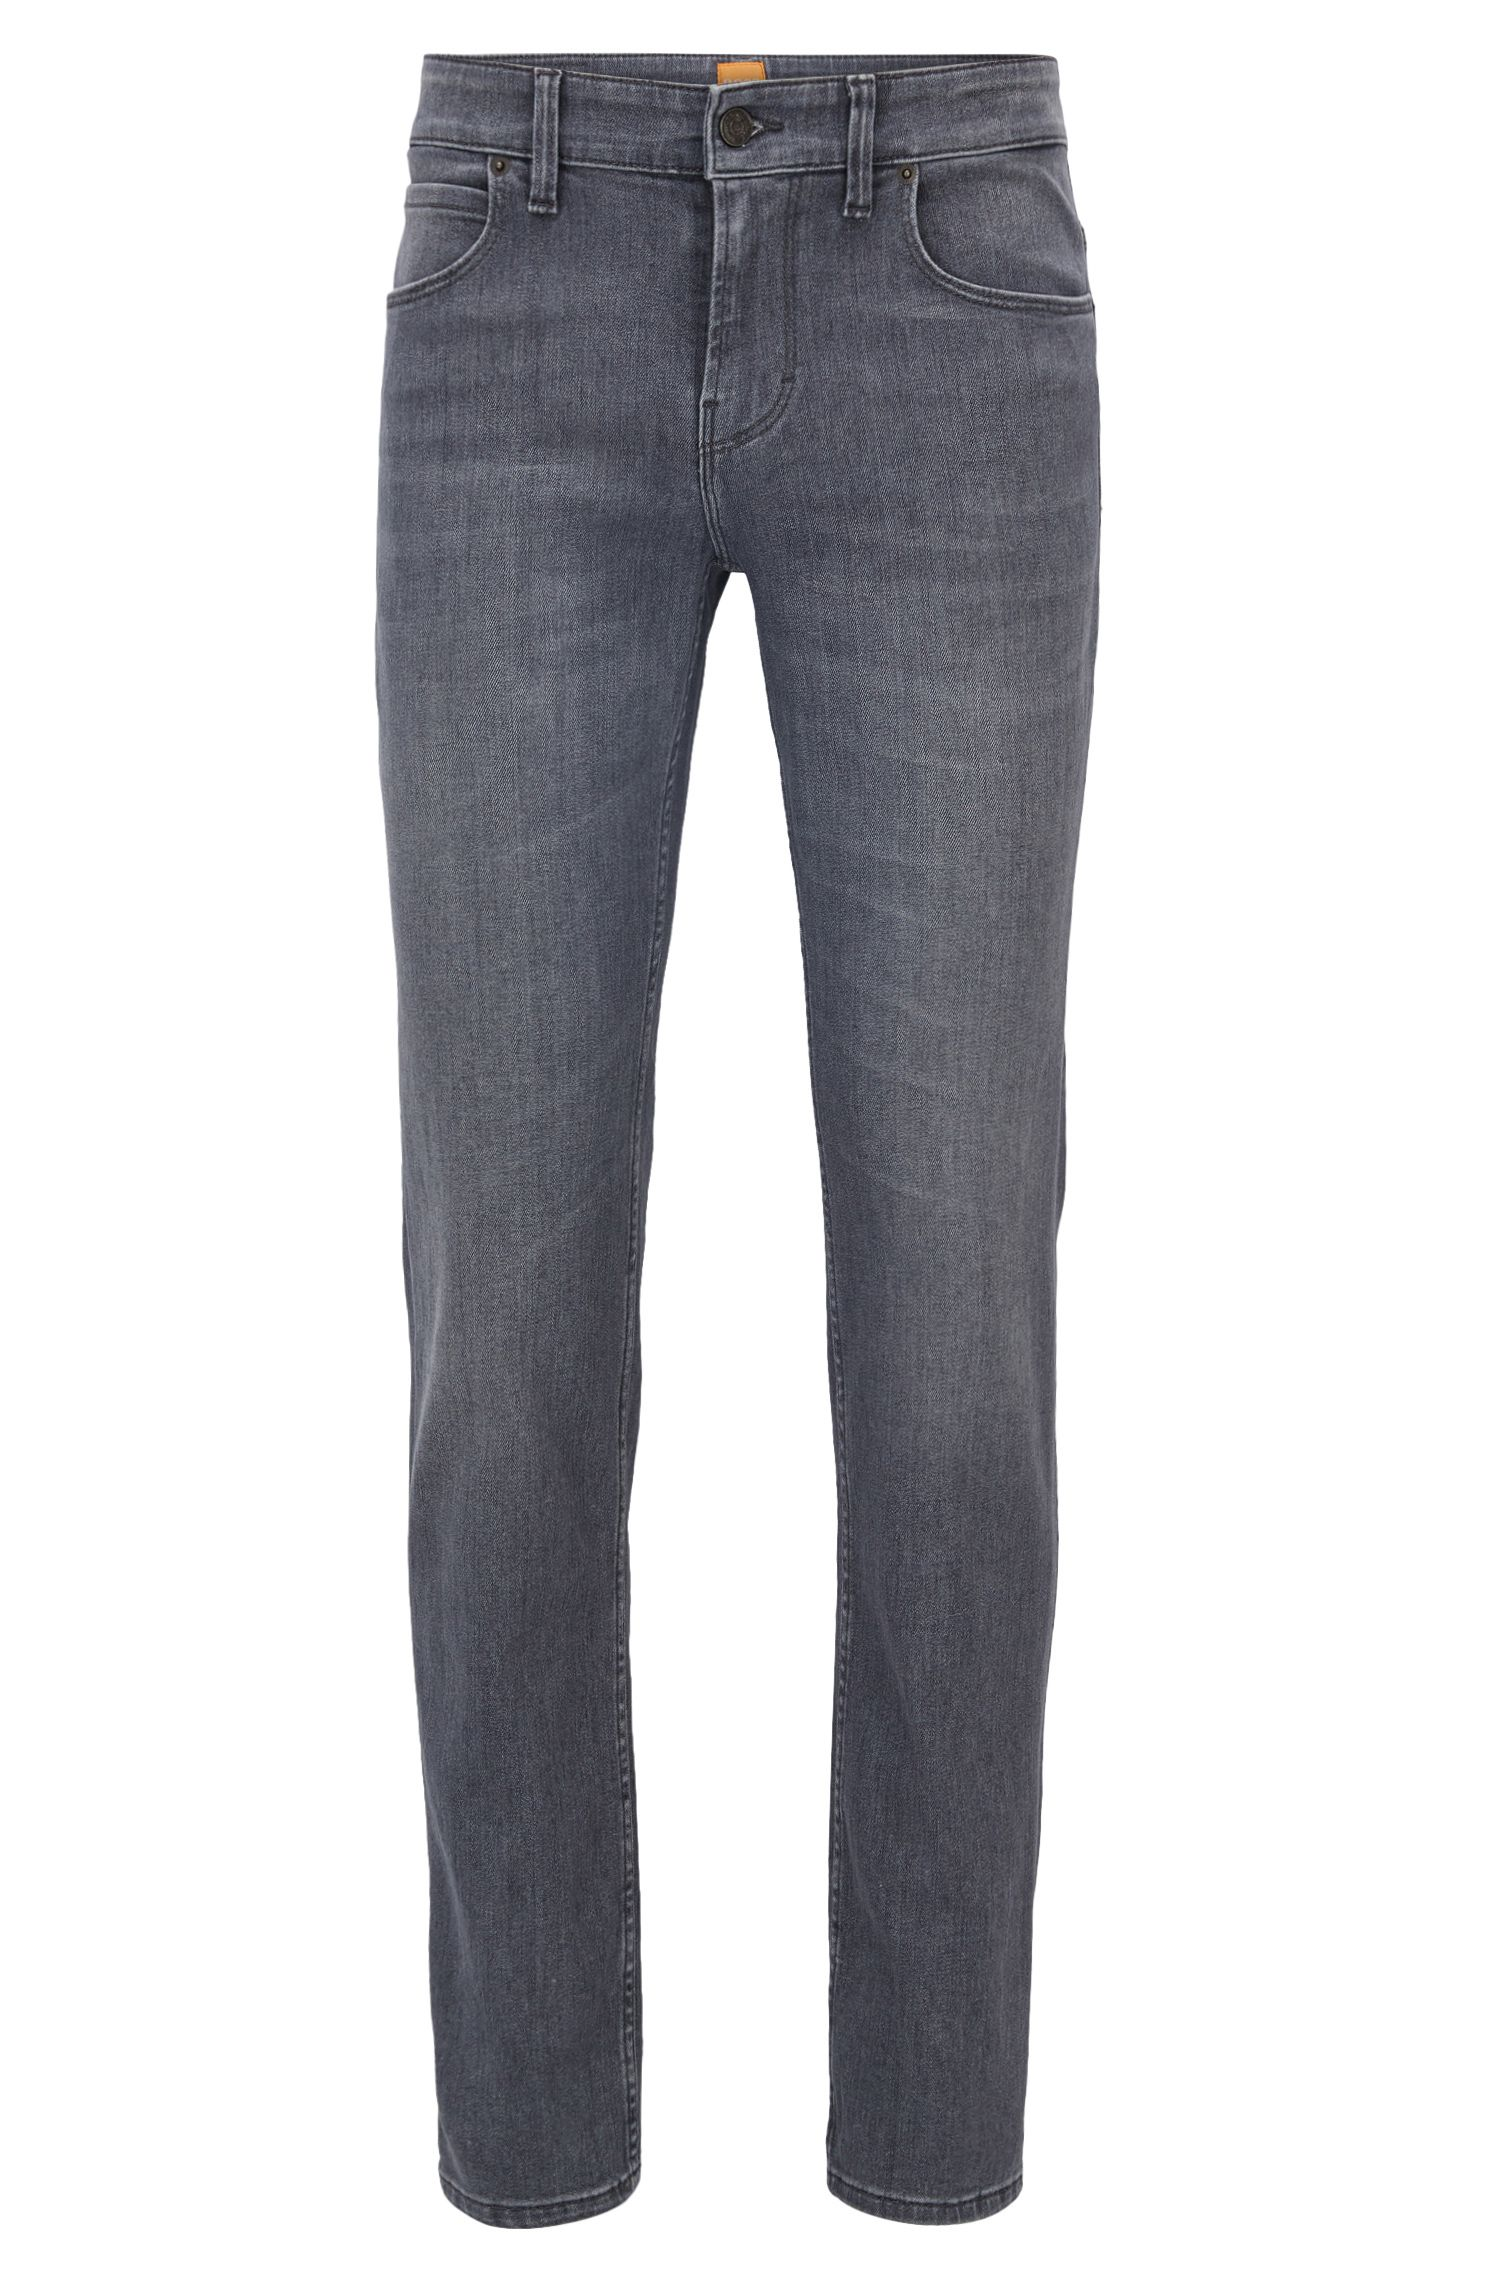 Jeans slim fit trattati in denim elasticizzato